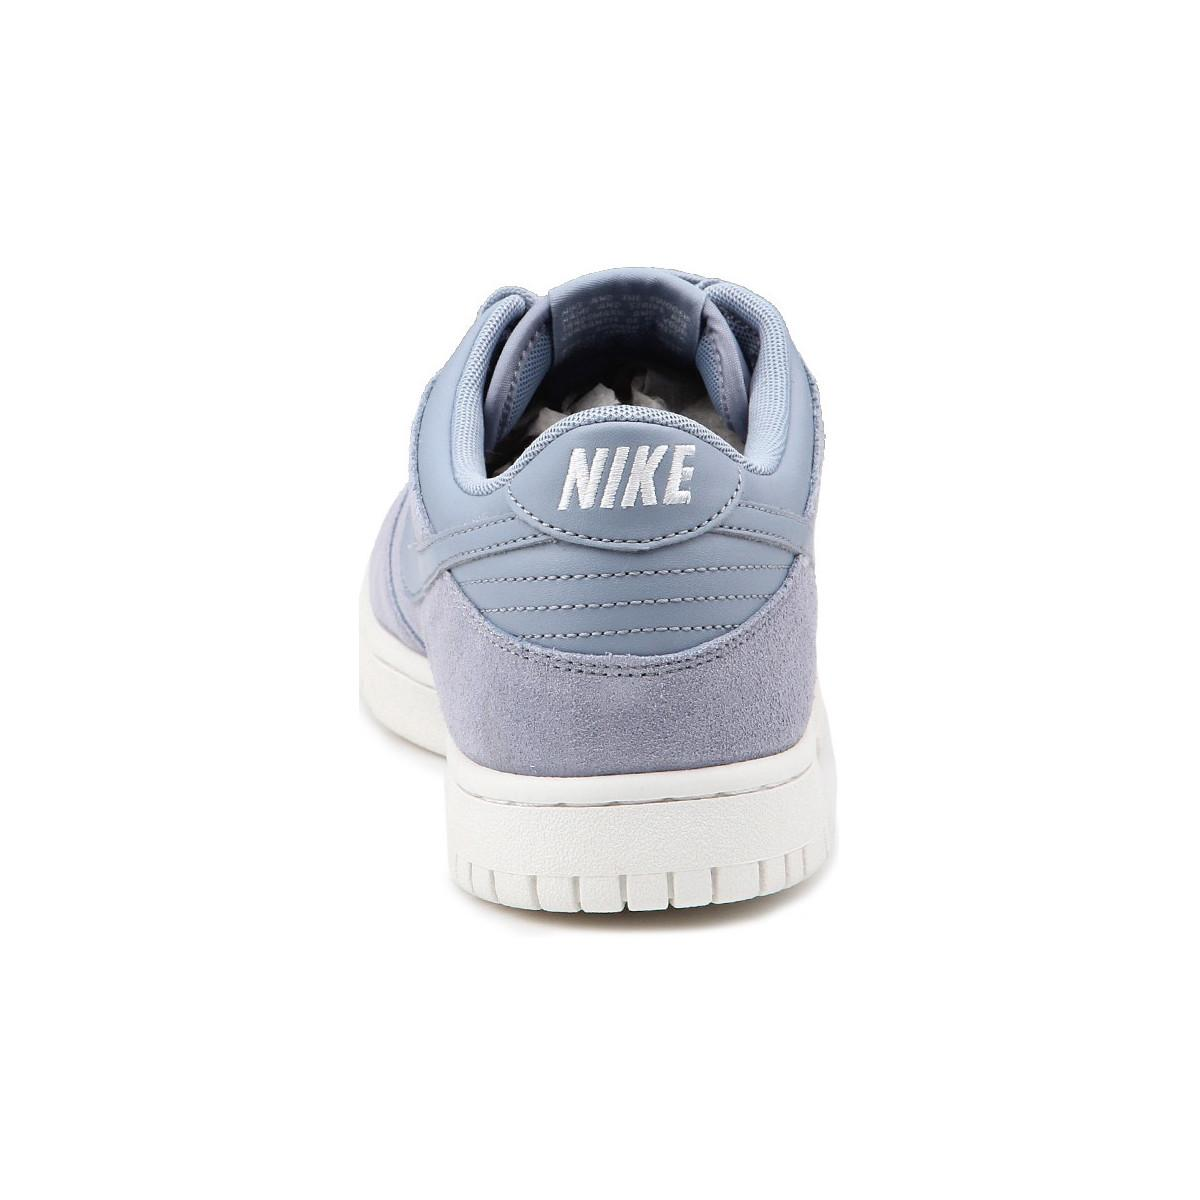 meet size 40 exclusive deals Nike Dunk Low 904234-005 Shoes (trainers) in Blue for Men - Lyst